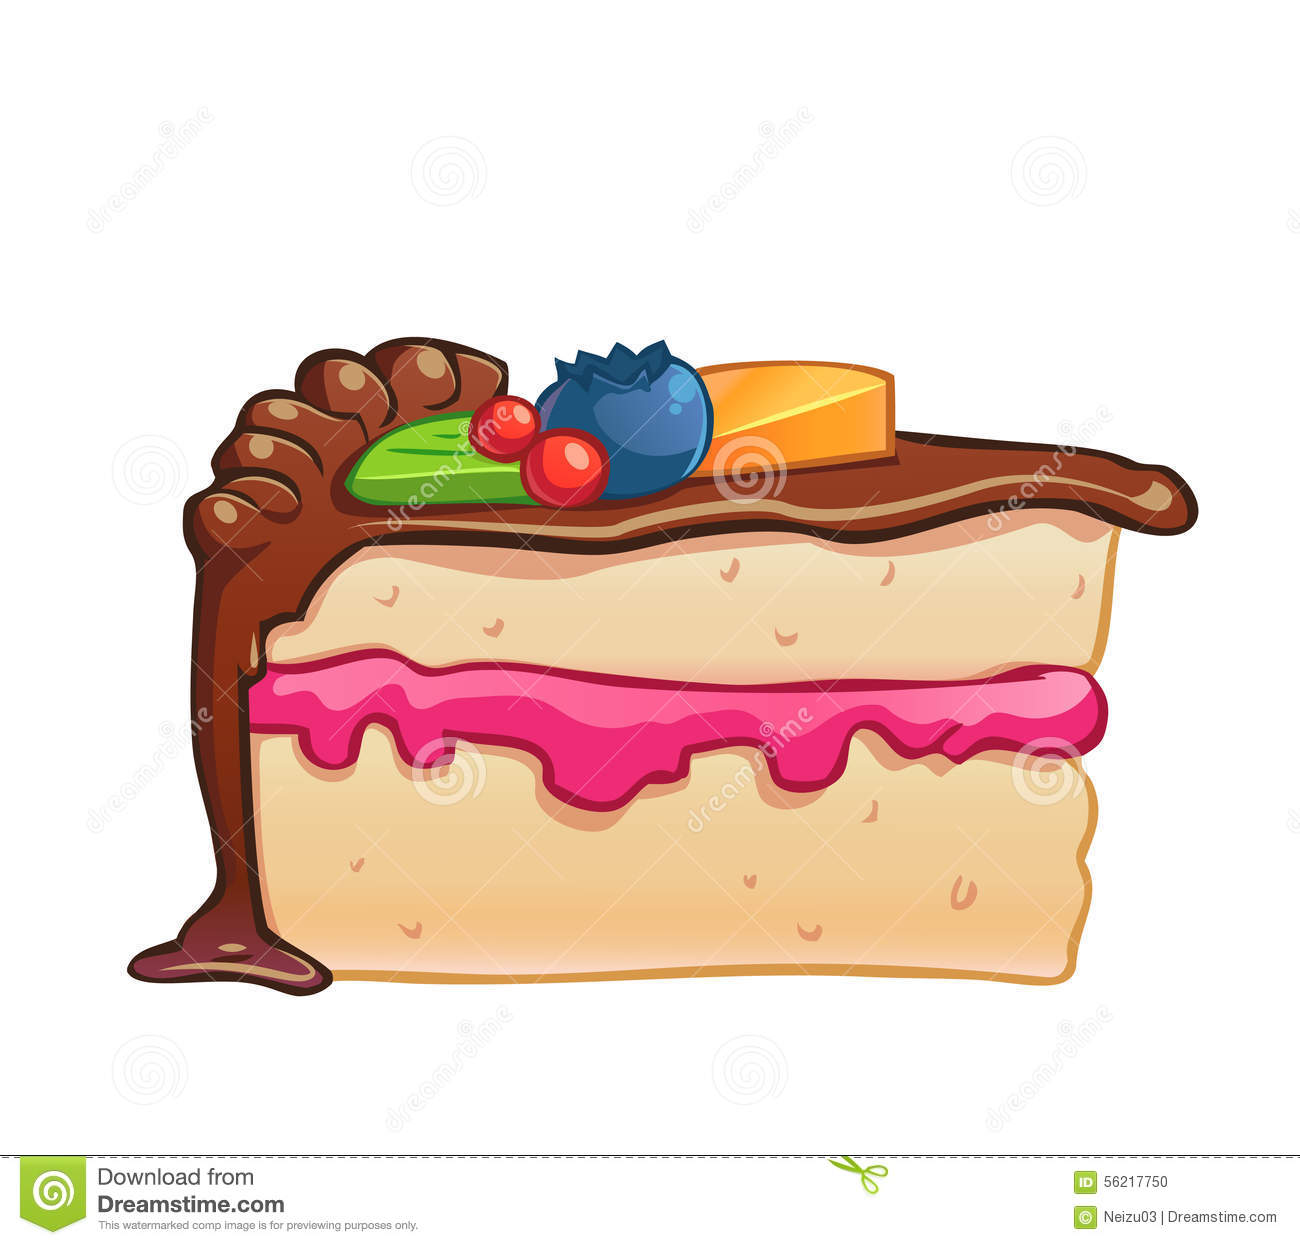 Cake Images Clipart